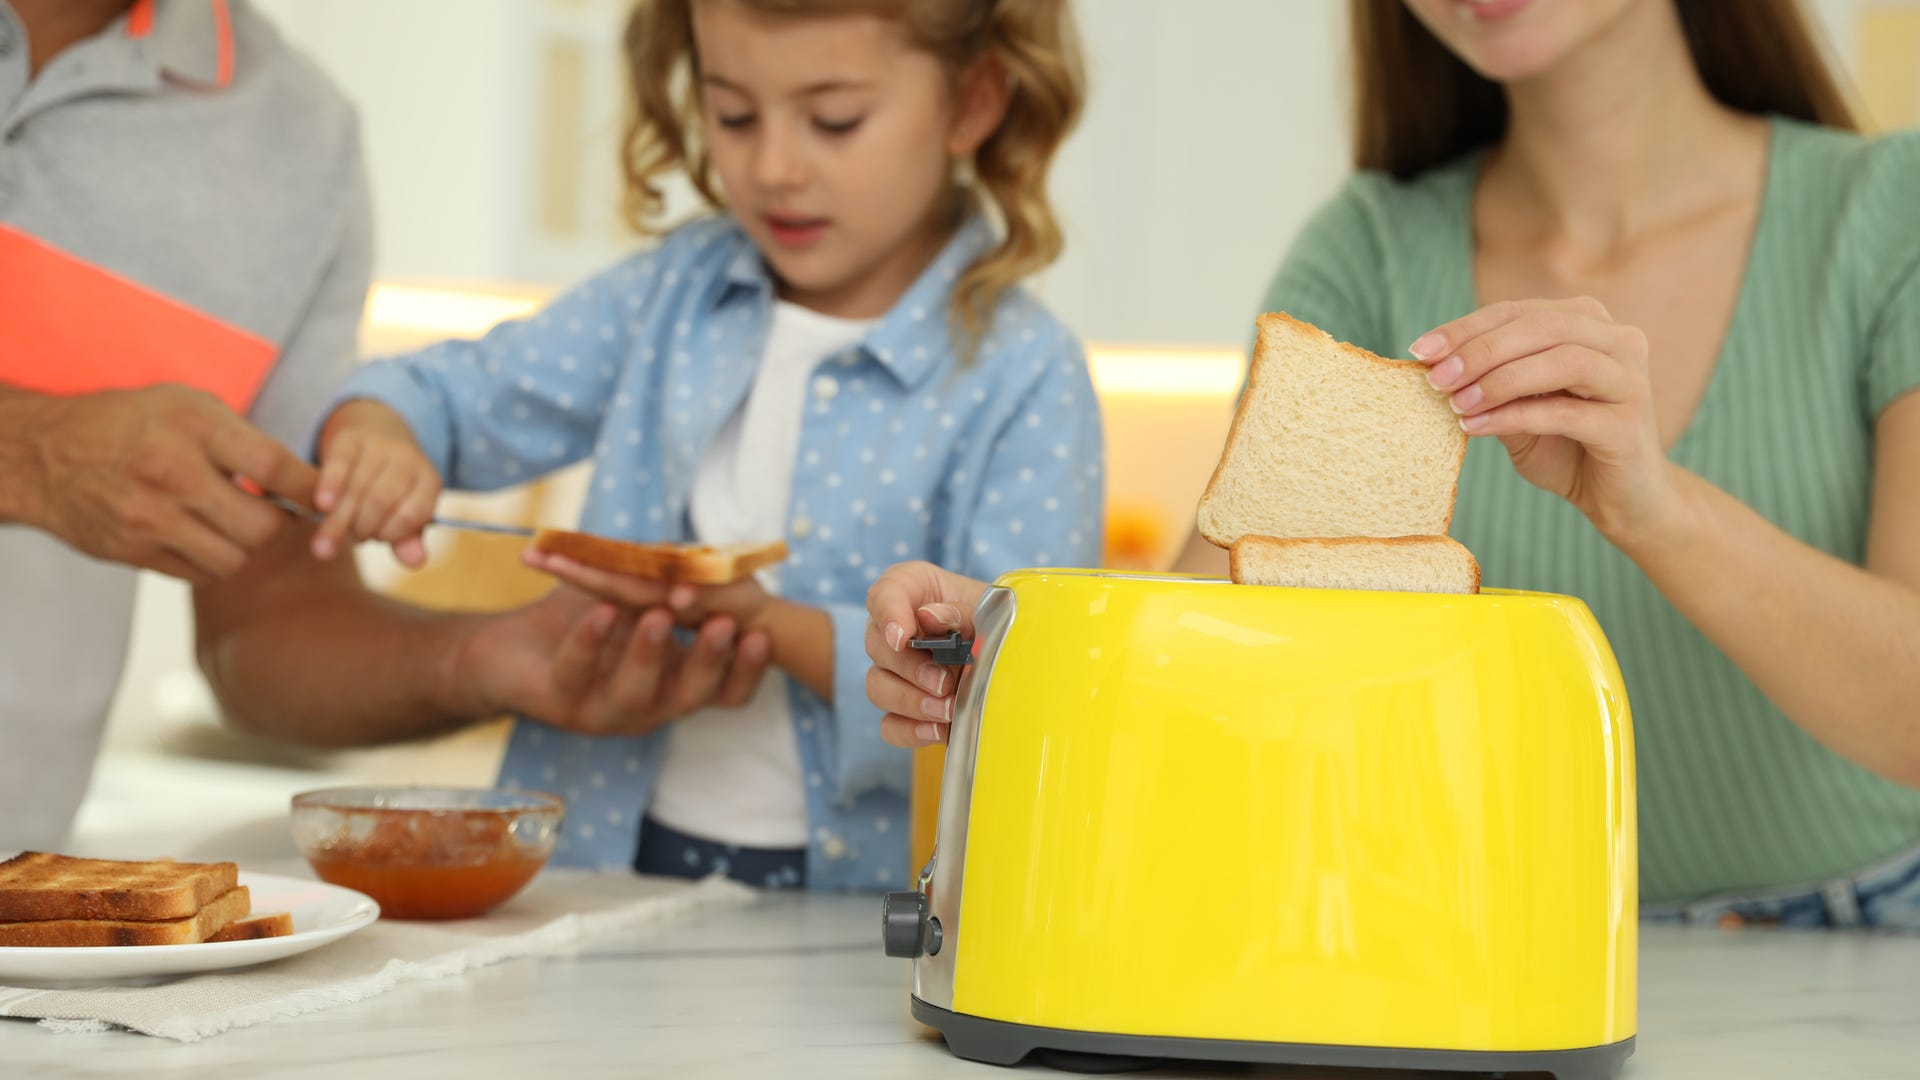 A family uses a yellow toaster to make toast for breakfast.